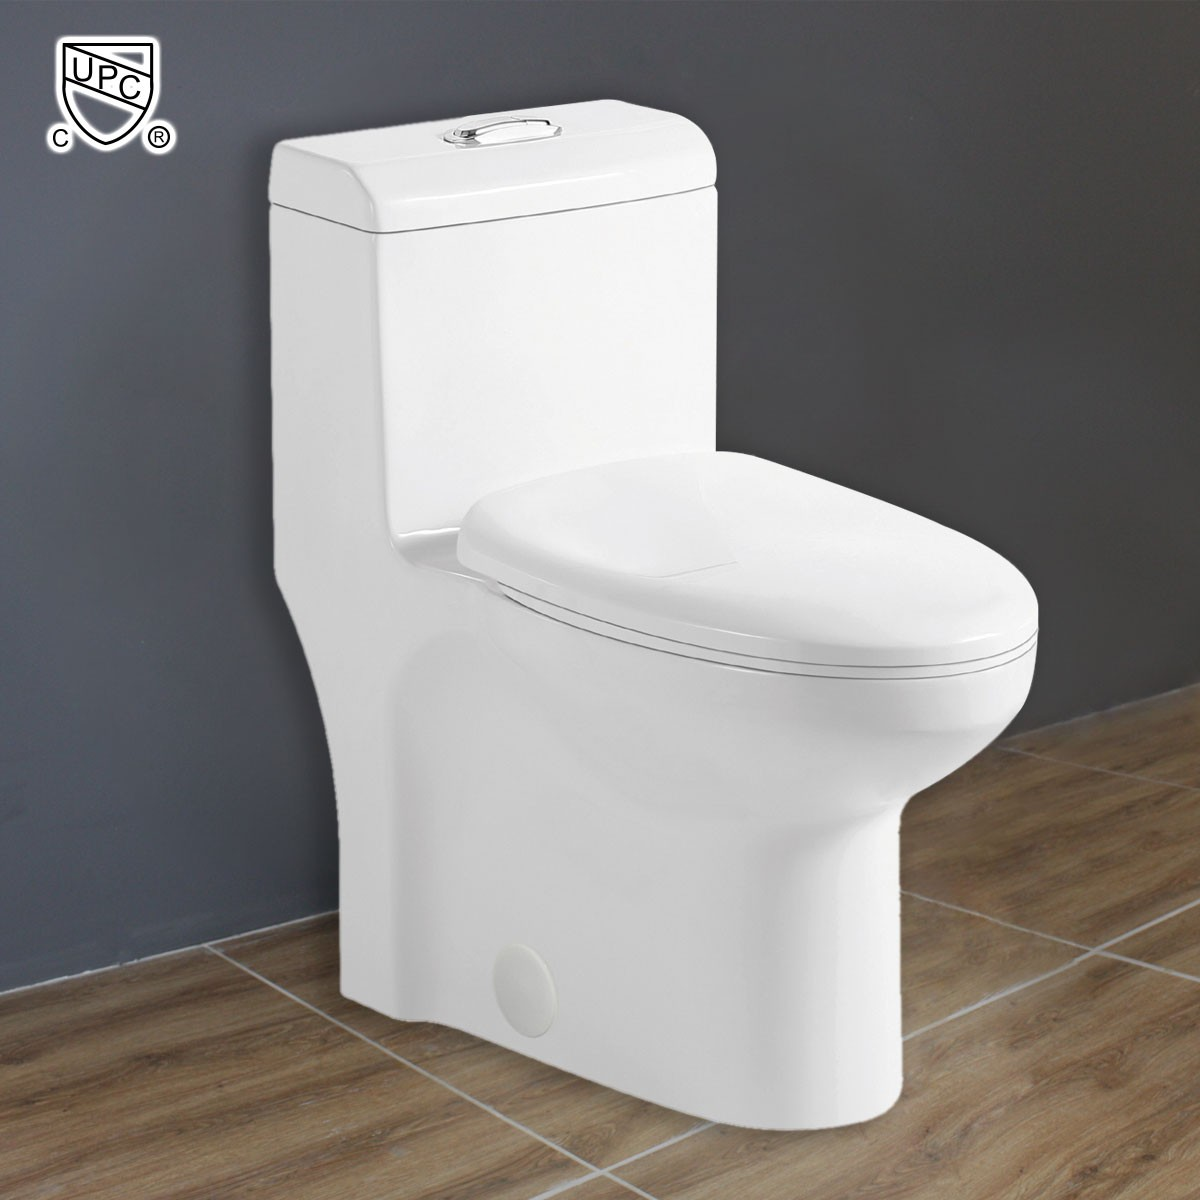 Dual Flush Siphonic Water Saving One-piece Toilet (DK-ZBQ-12212)